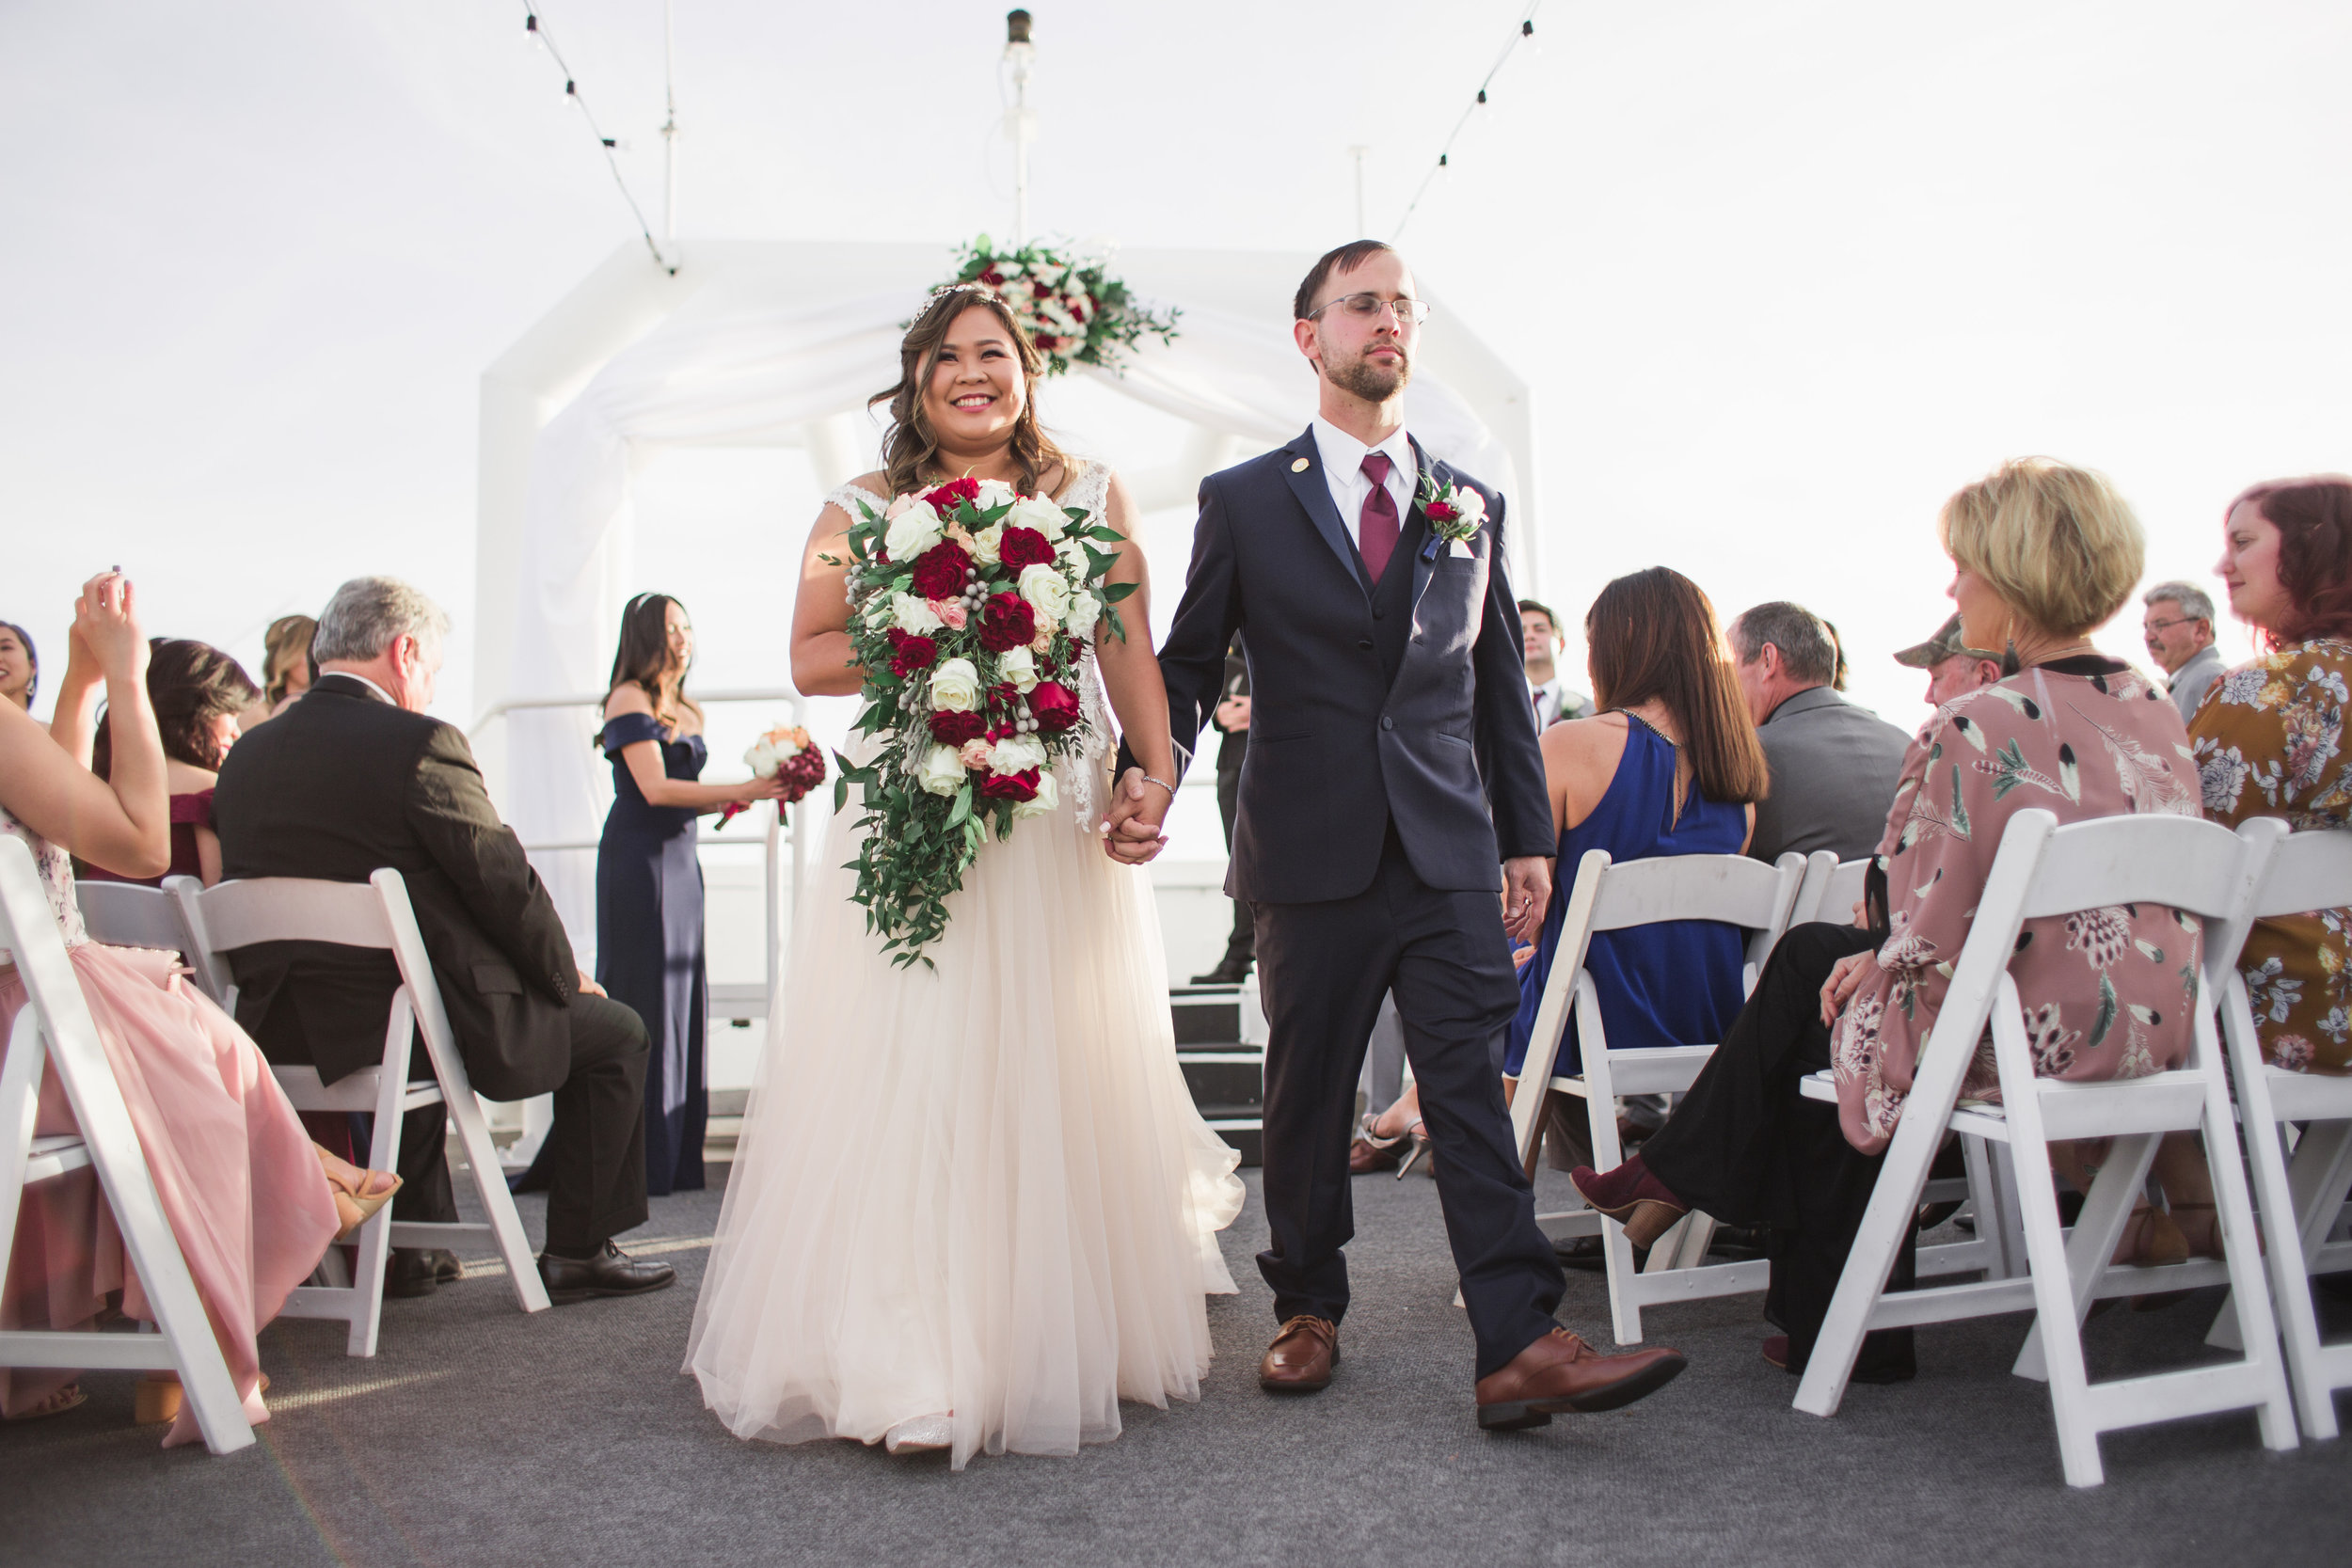 Solaris-Yacht-Destin-Florida-Wedding-Photography-Jerica-Chad-17.jpg